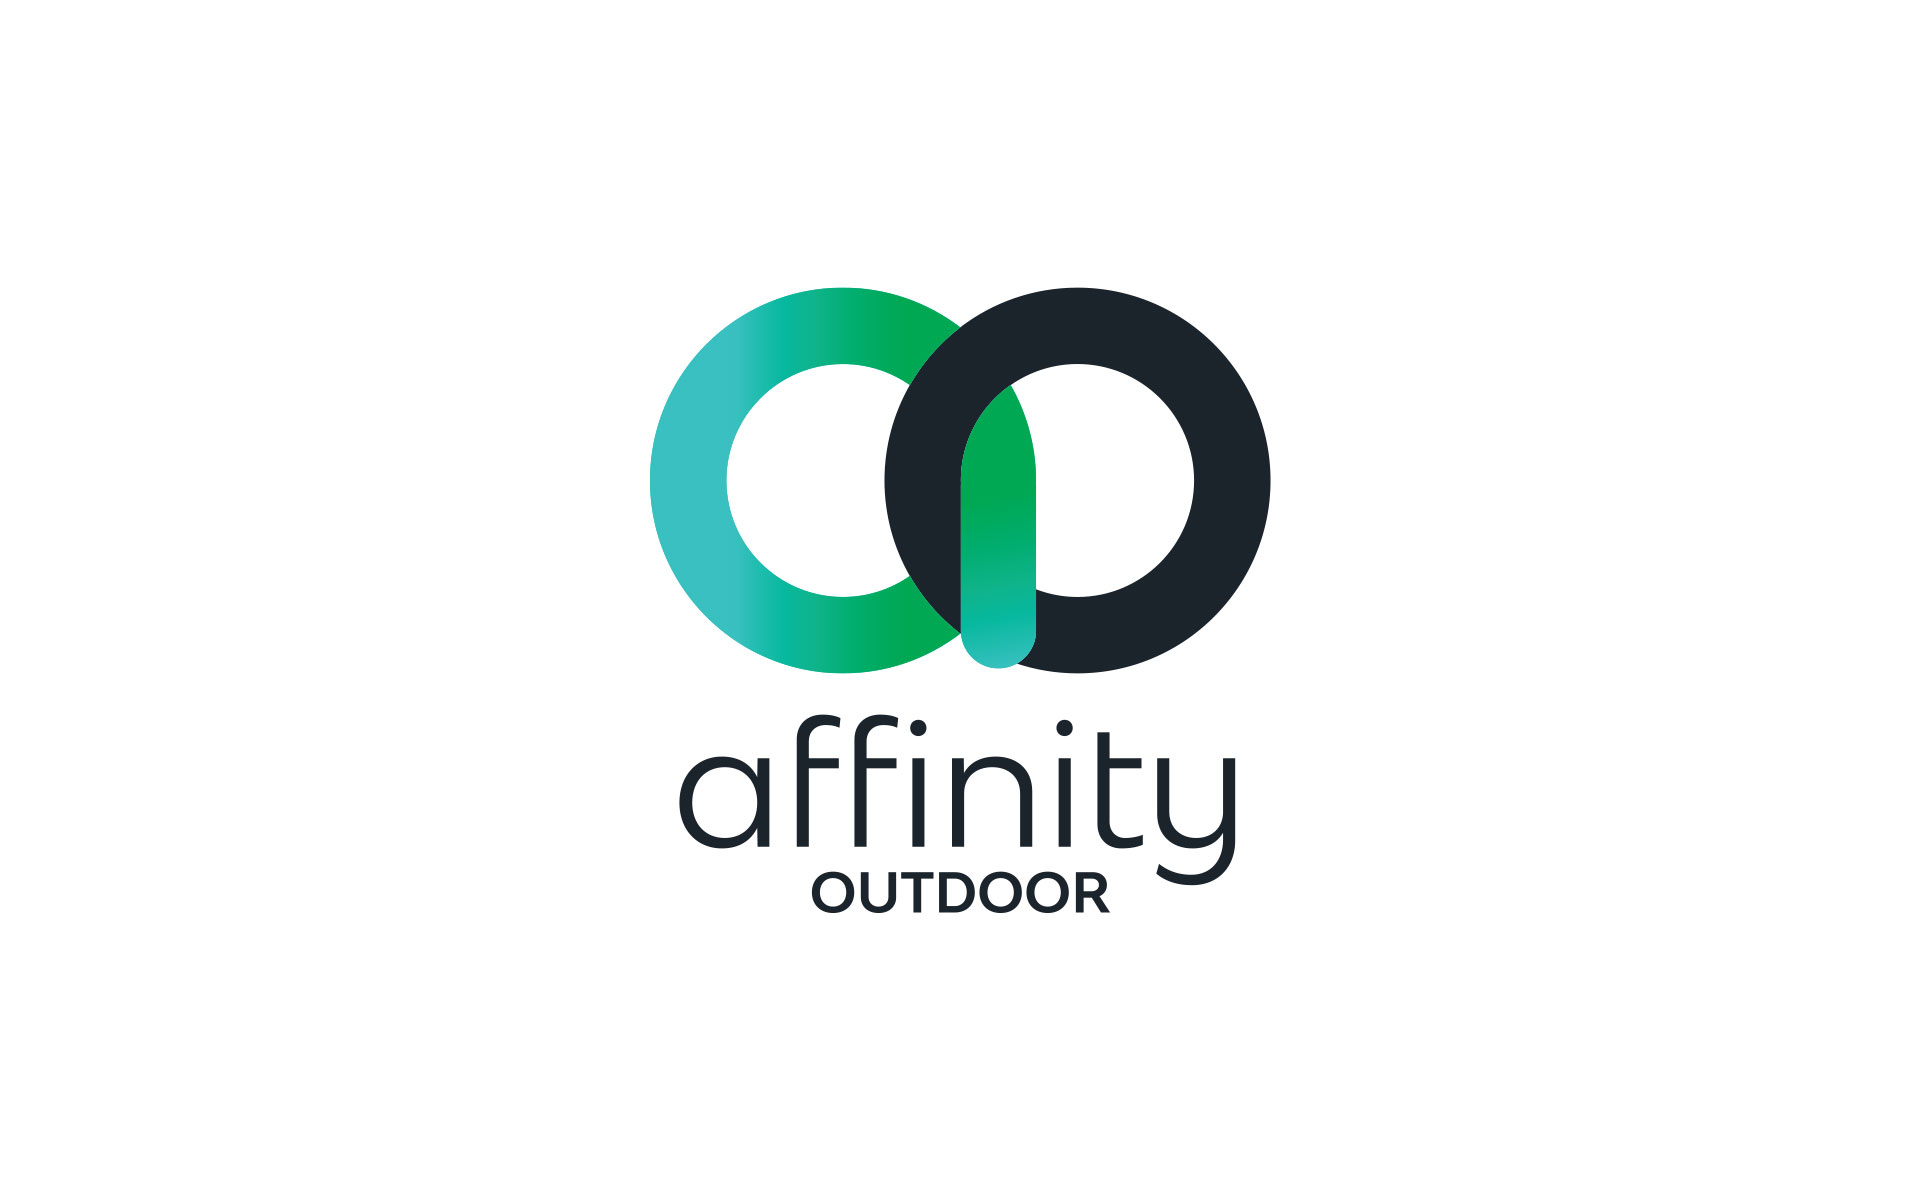 Affinity Outdoor logo, branding, powerpoint & website designed & built by Amy at Yellow Sunday